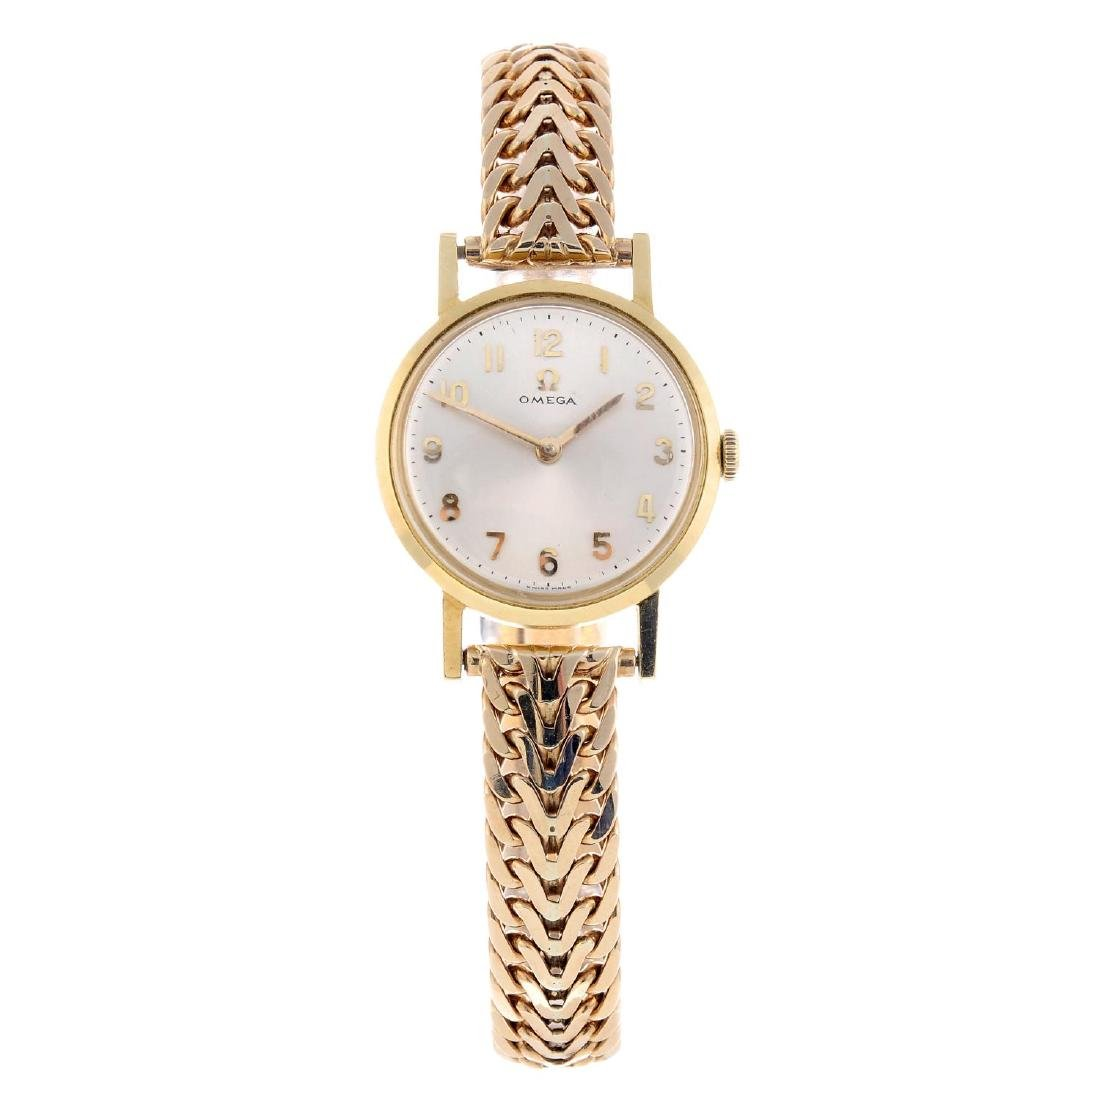 OMEGA - a lady's bracelet watch. 18ct yellow gold case,